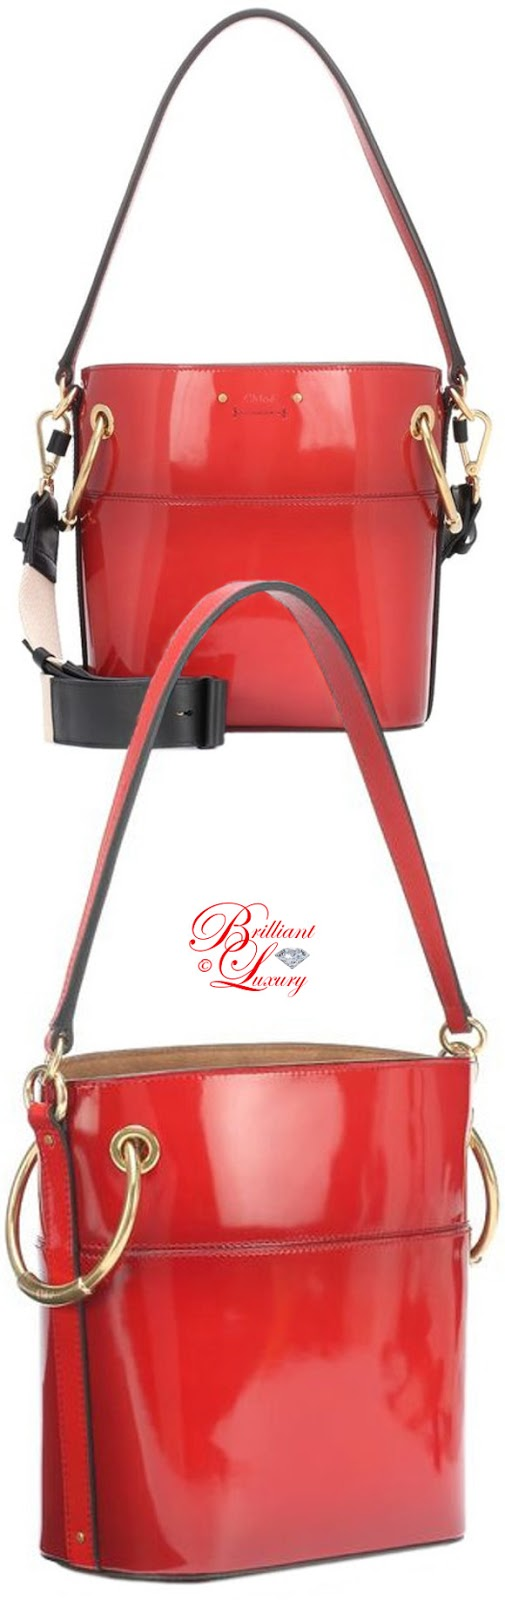 Brilliant Luxury ♦ PANTONE Fashion Color SS 2019 ~ Fiesta ♦ Chloé Roy patent leather bucket bag #red